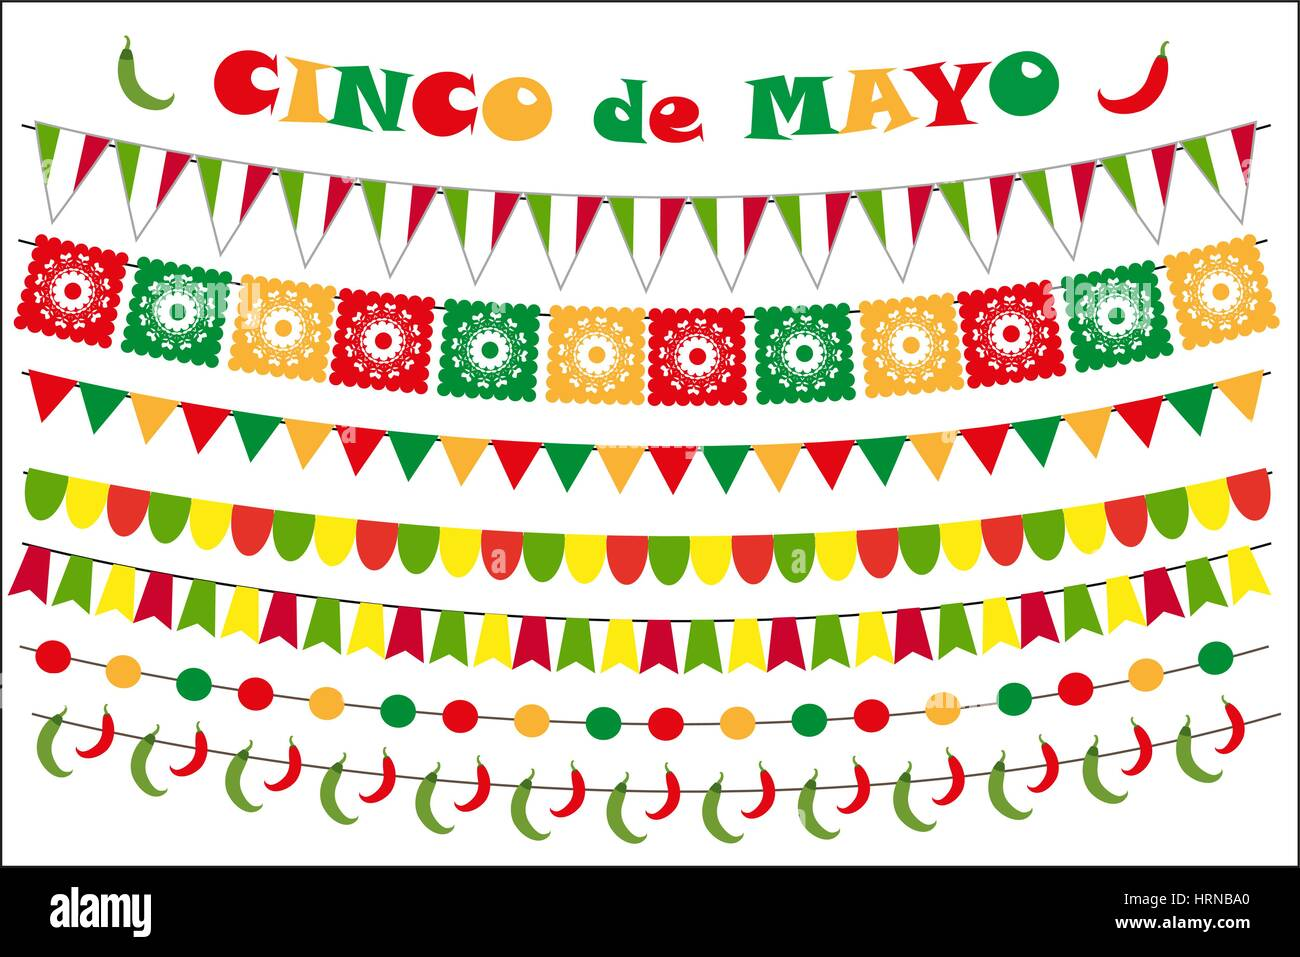 Cinco De Mayo Celebration Set Of Colored Flags Garlands Bunting Flat Style Isolated On White Background Vector Illustration Clip Art